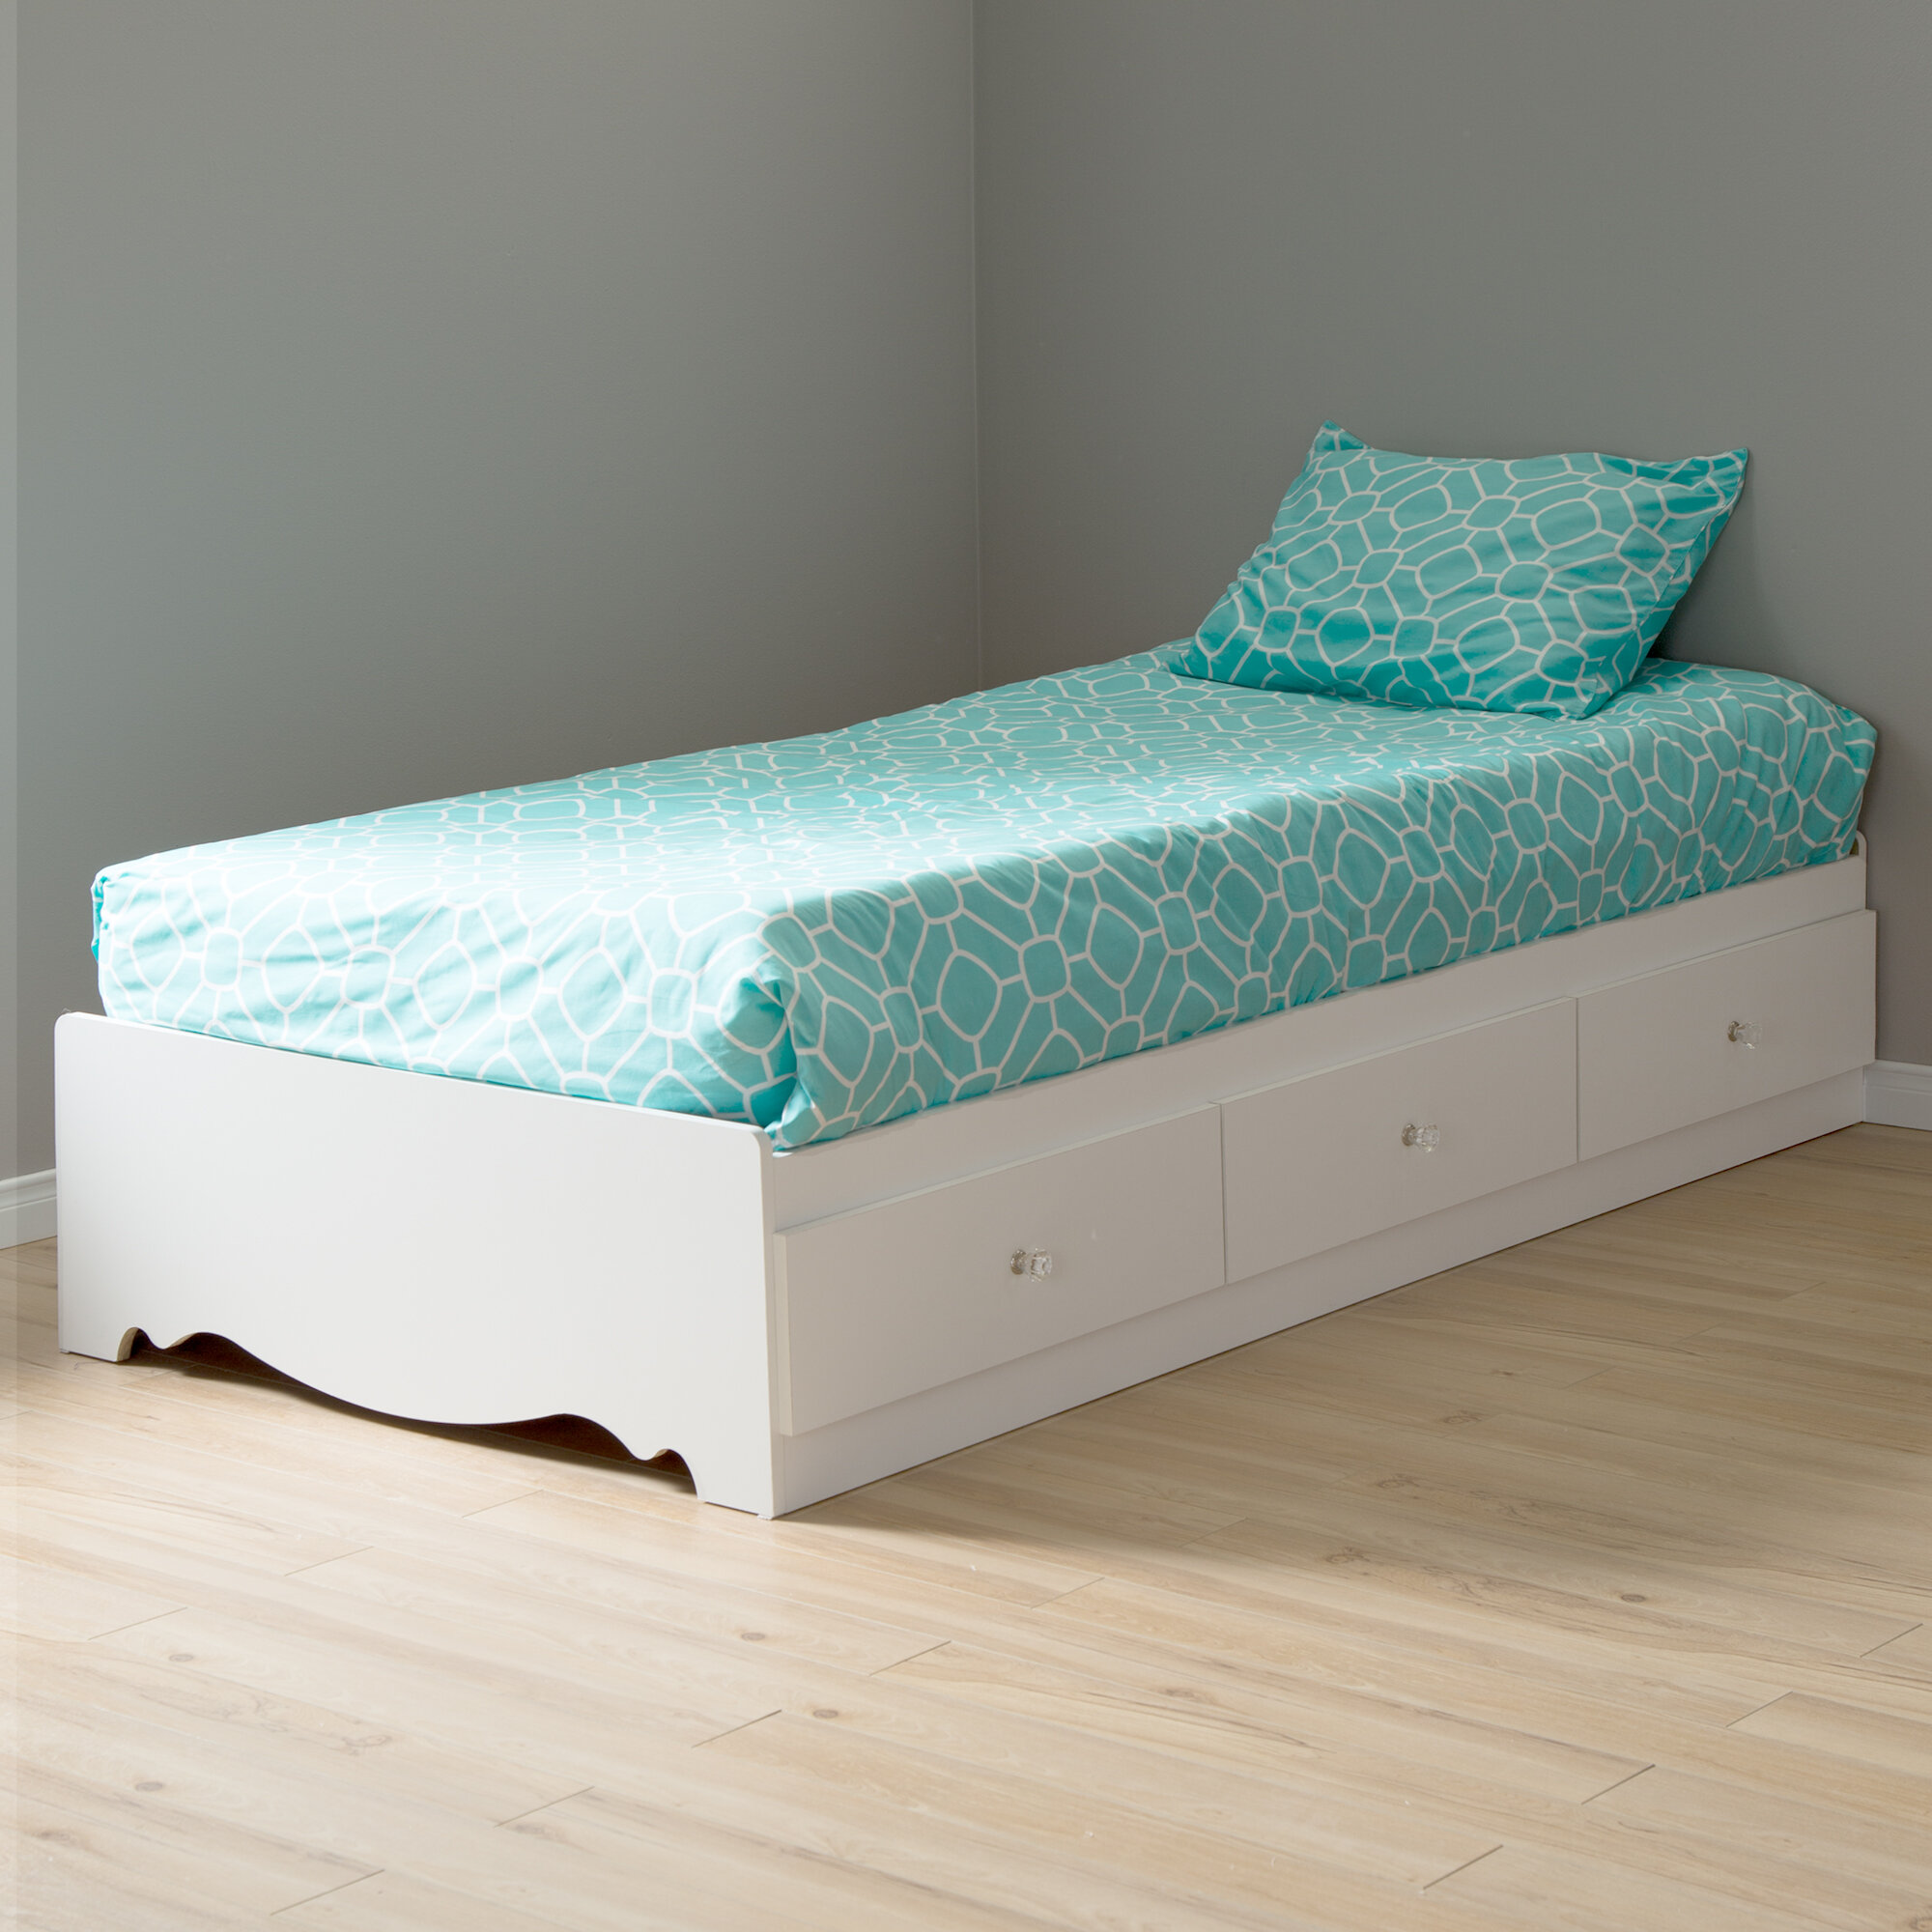 South Shore Crystal Twin Mate S Captain S Bed With Drawers Reviews Wayfair Ca